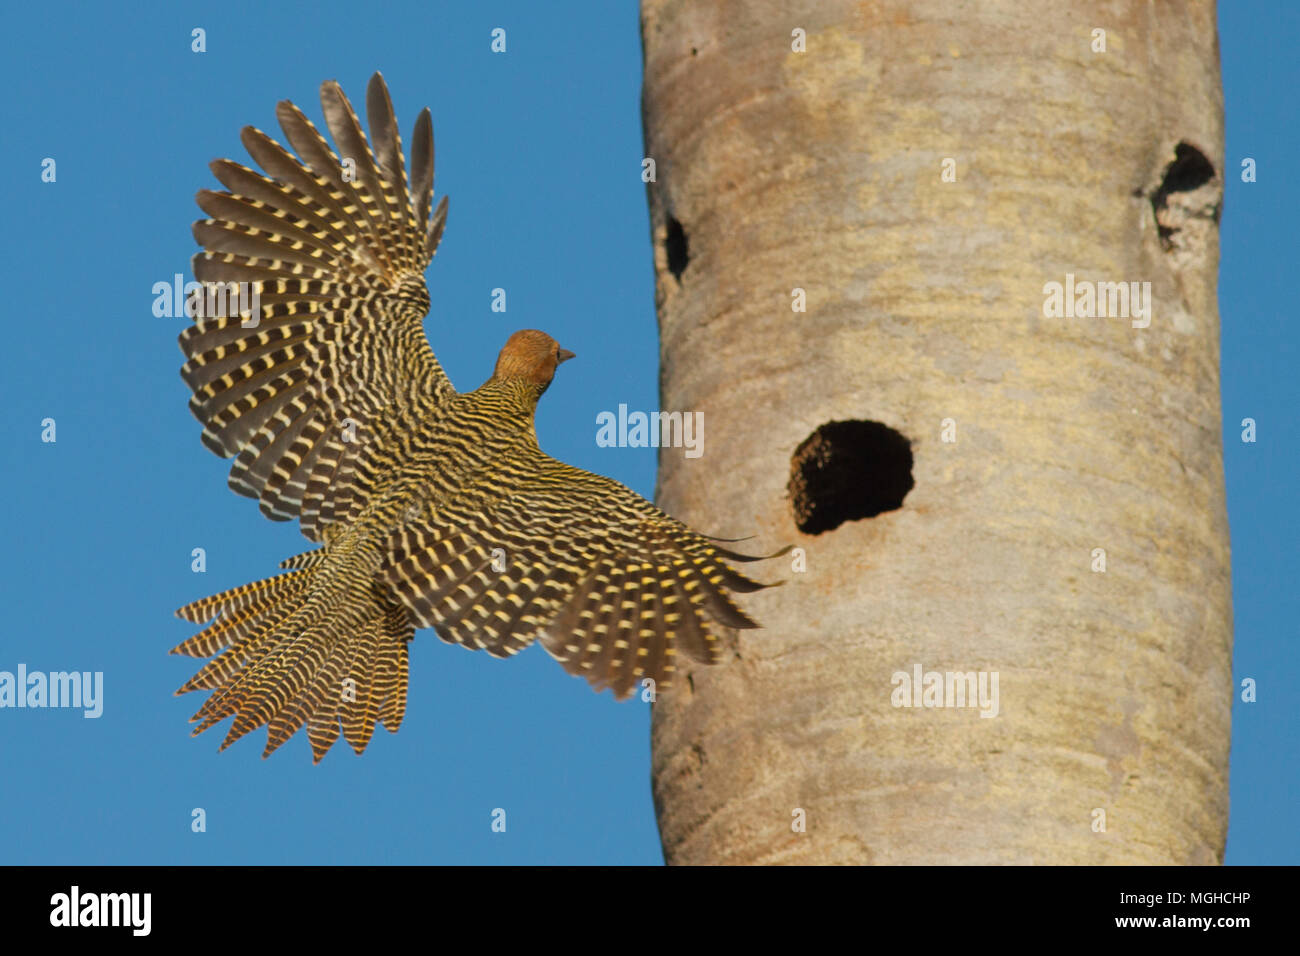 Fernandina's Flicker (Colaptes fernandinae), Endemic, Nesting in fan palm savannah Vulnerable, Zapata Peninsula, CUBA - Stock Image